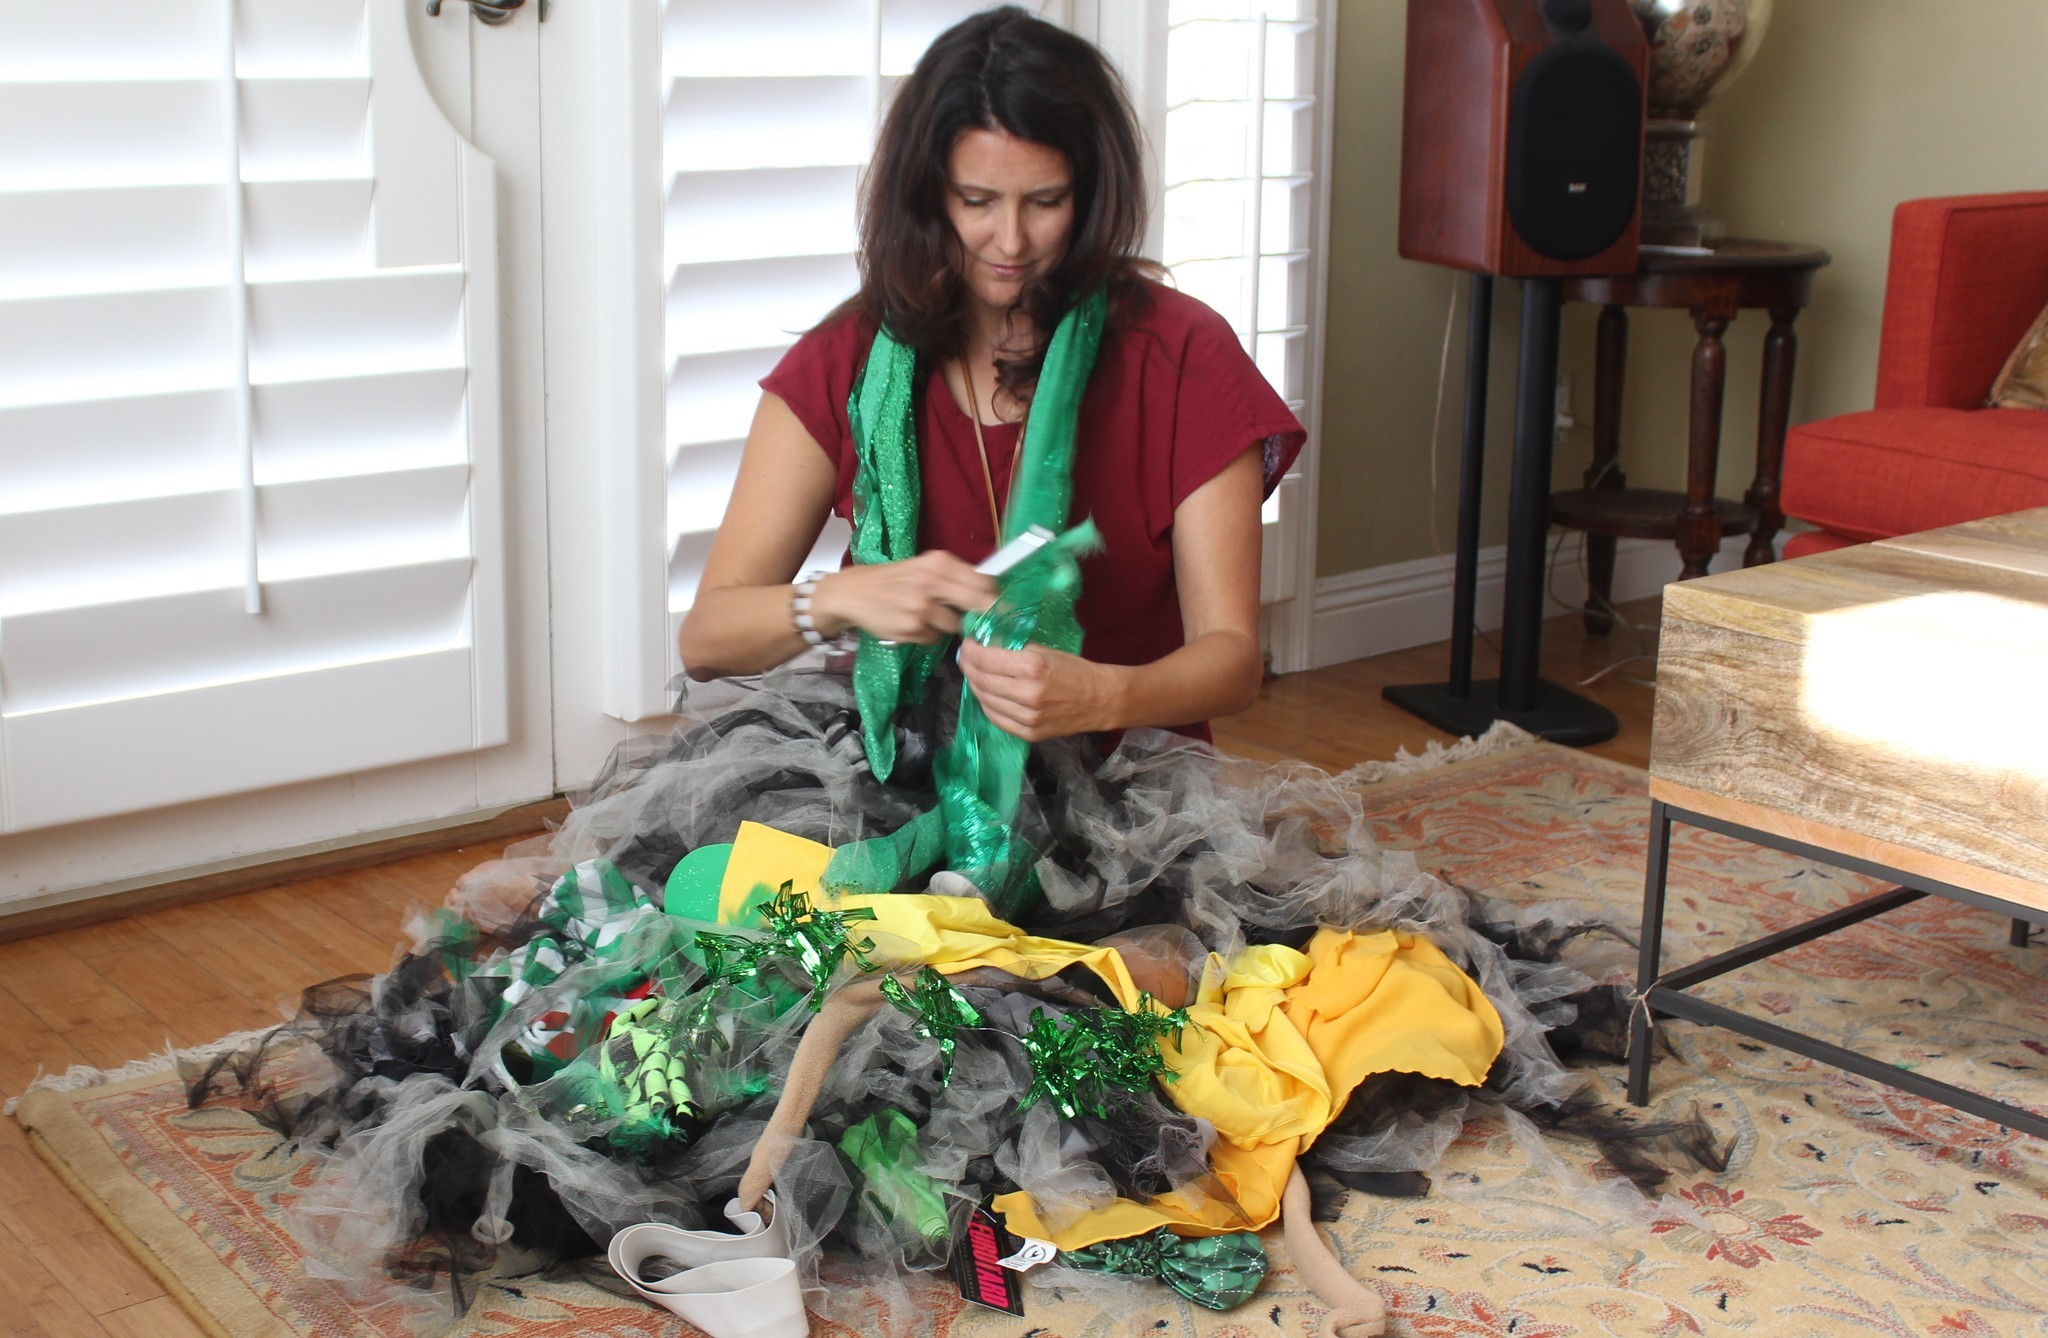 In her WindanSea living room, Shusterman packs the costumes she will bring on her groundbreaking trip to Africa.